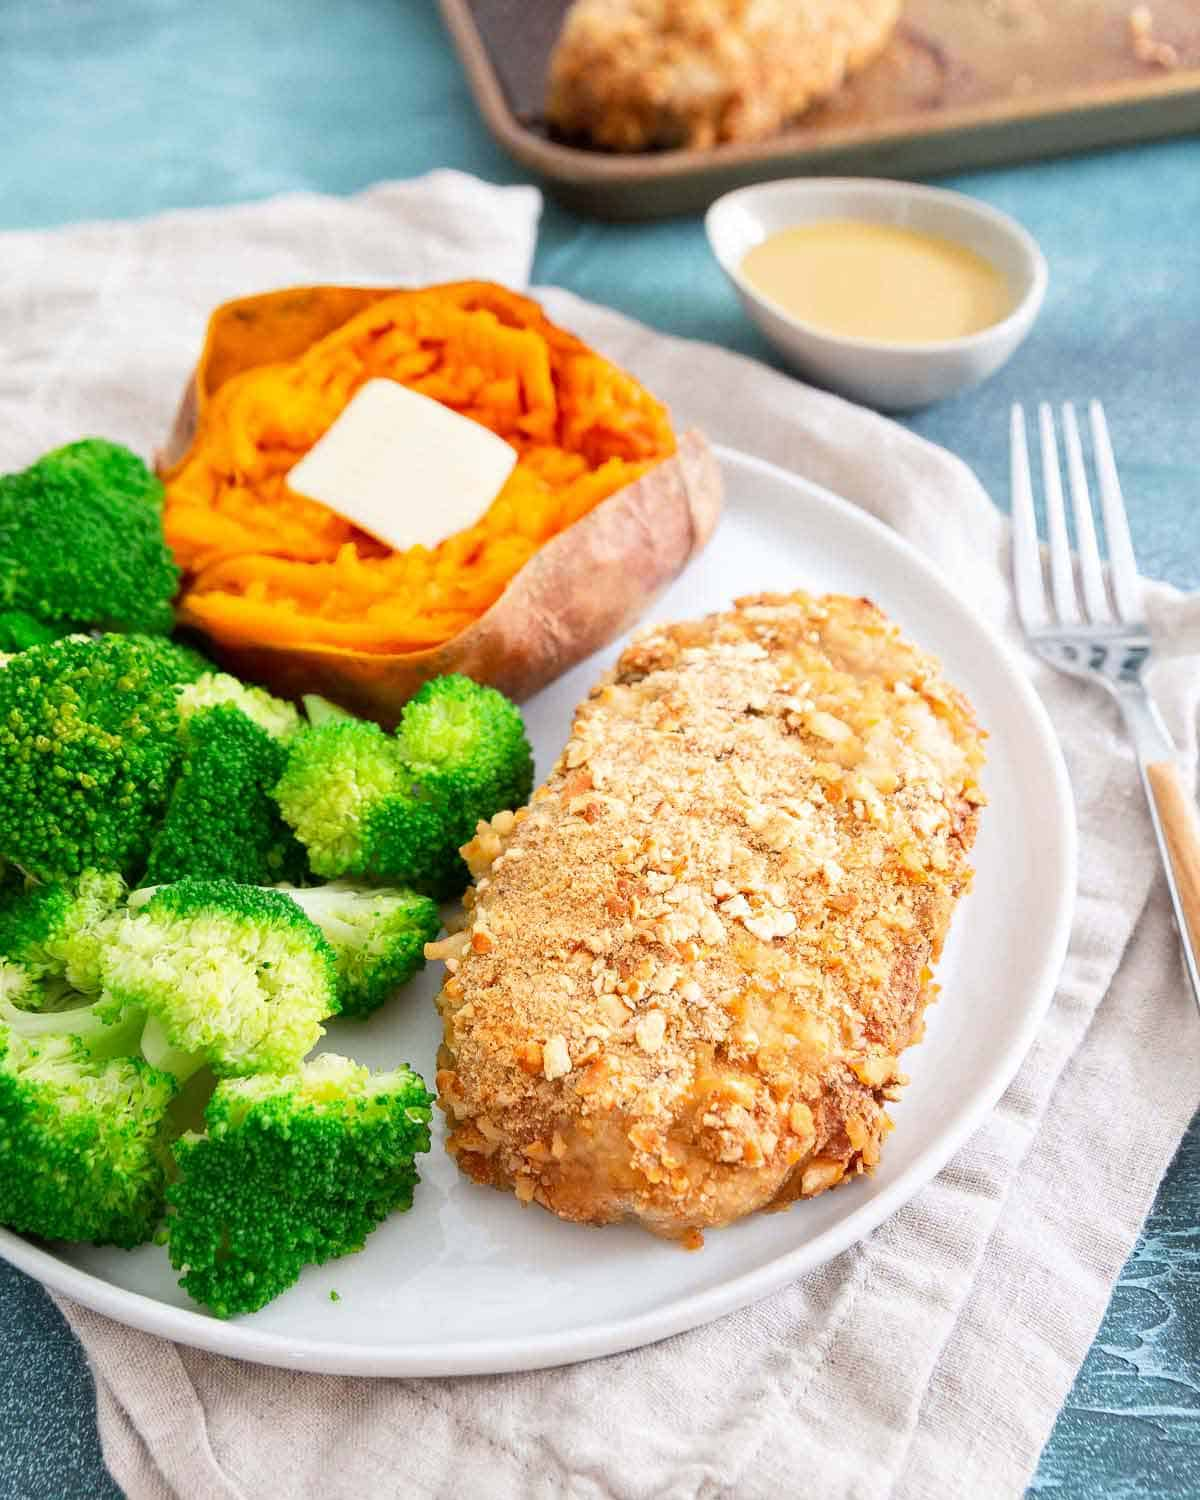 These baked pretzel crusted pork chops with an easy maple dijon sauce are an easy and healthy dinner packed with lean protein.